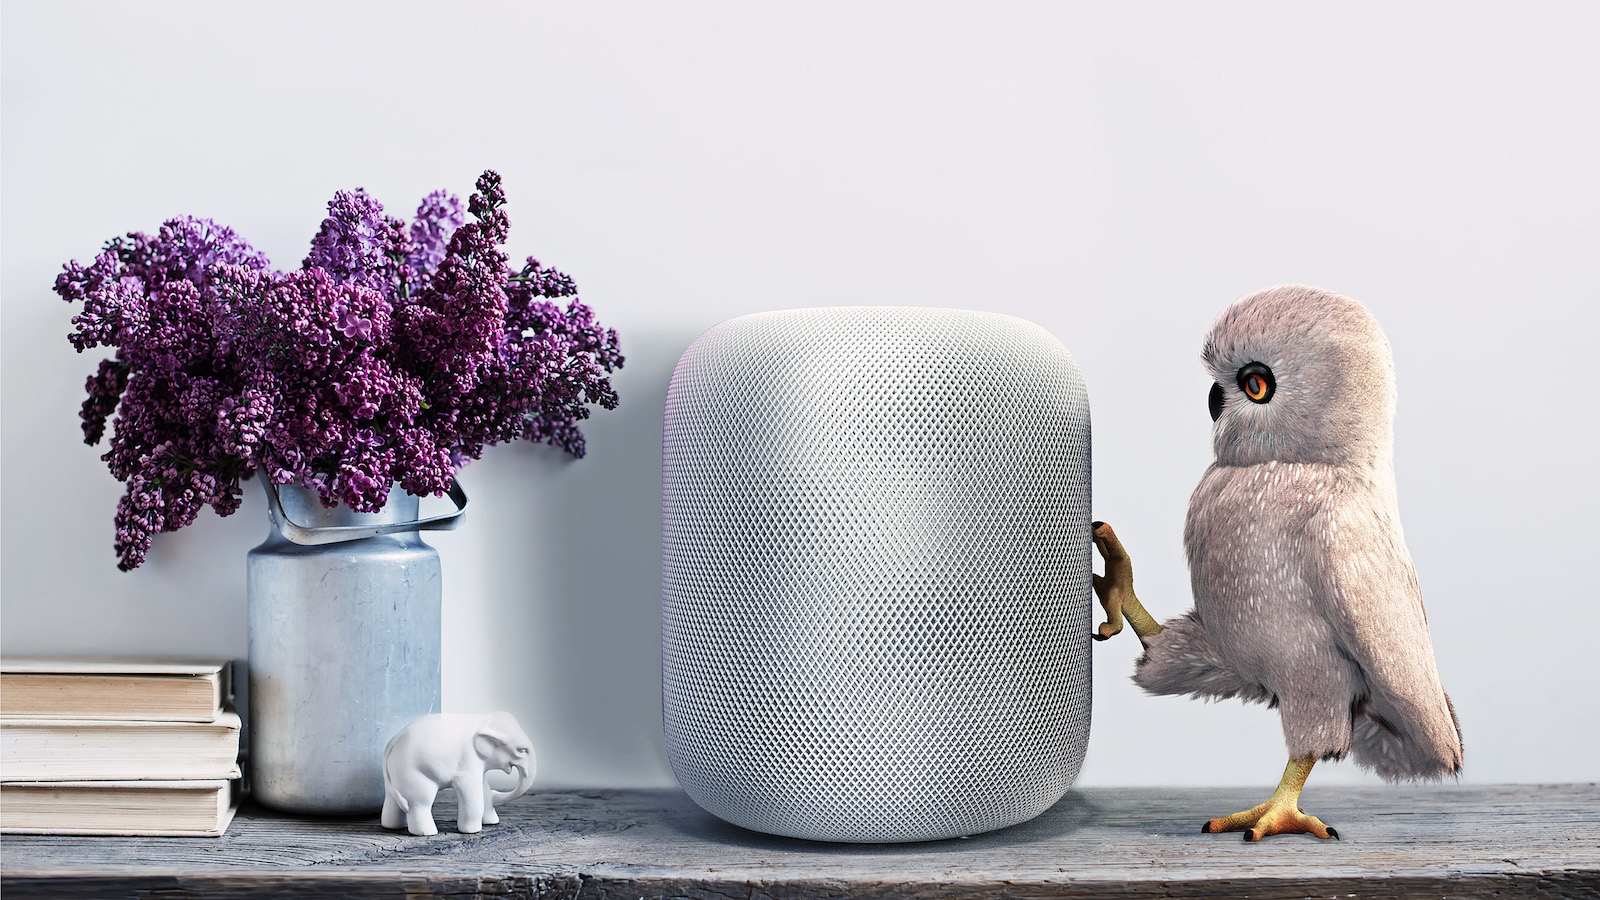 Smart speakers are on the rise  Will news grow with them